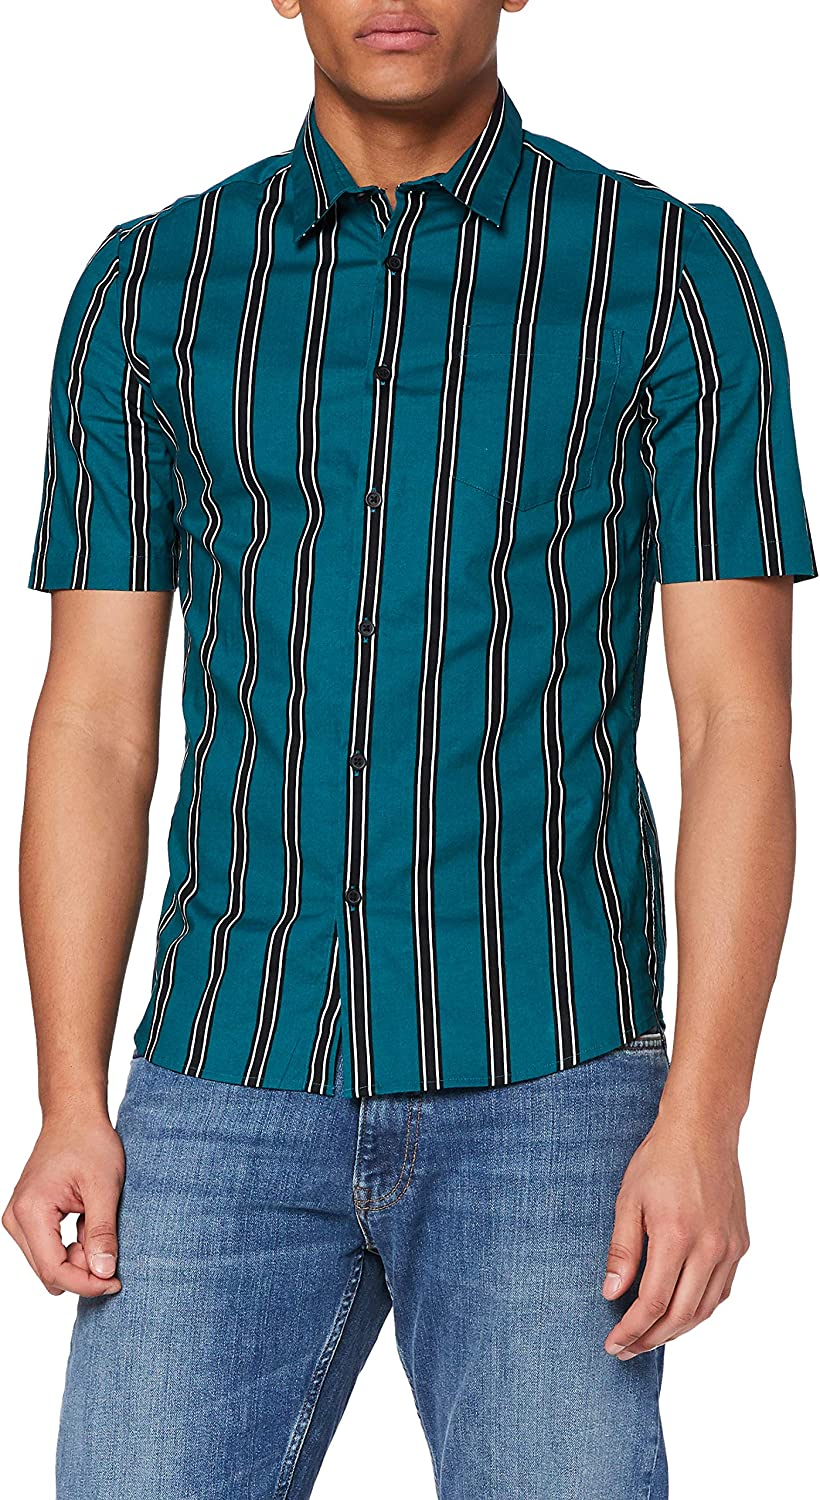 New Look Muscle Stripe Camisa para Hombre